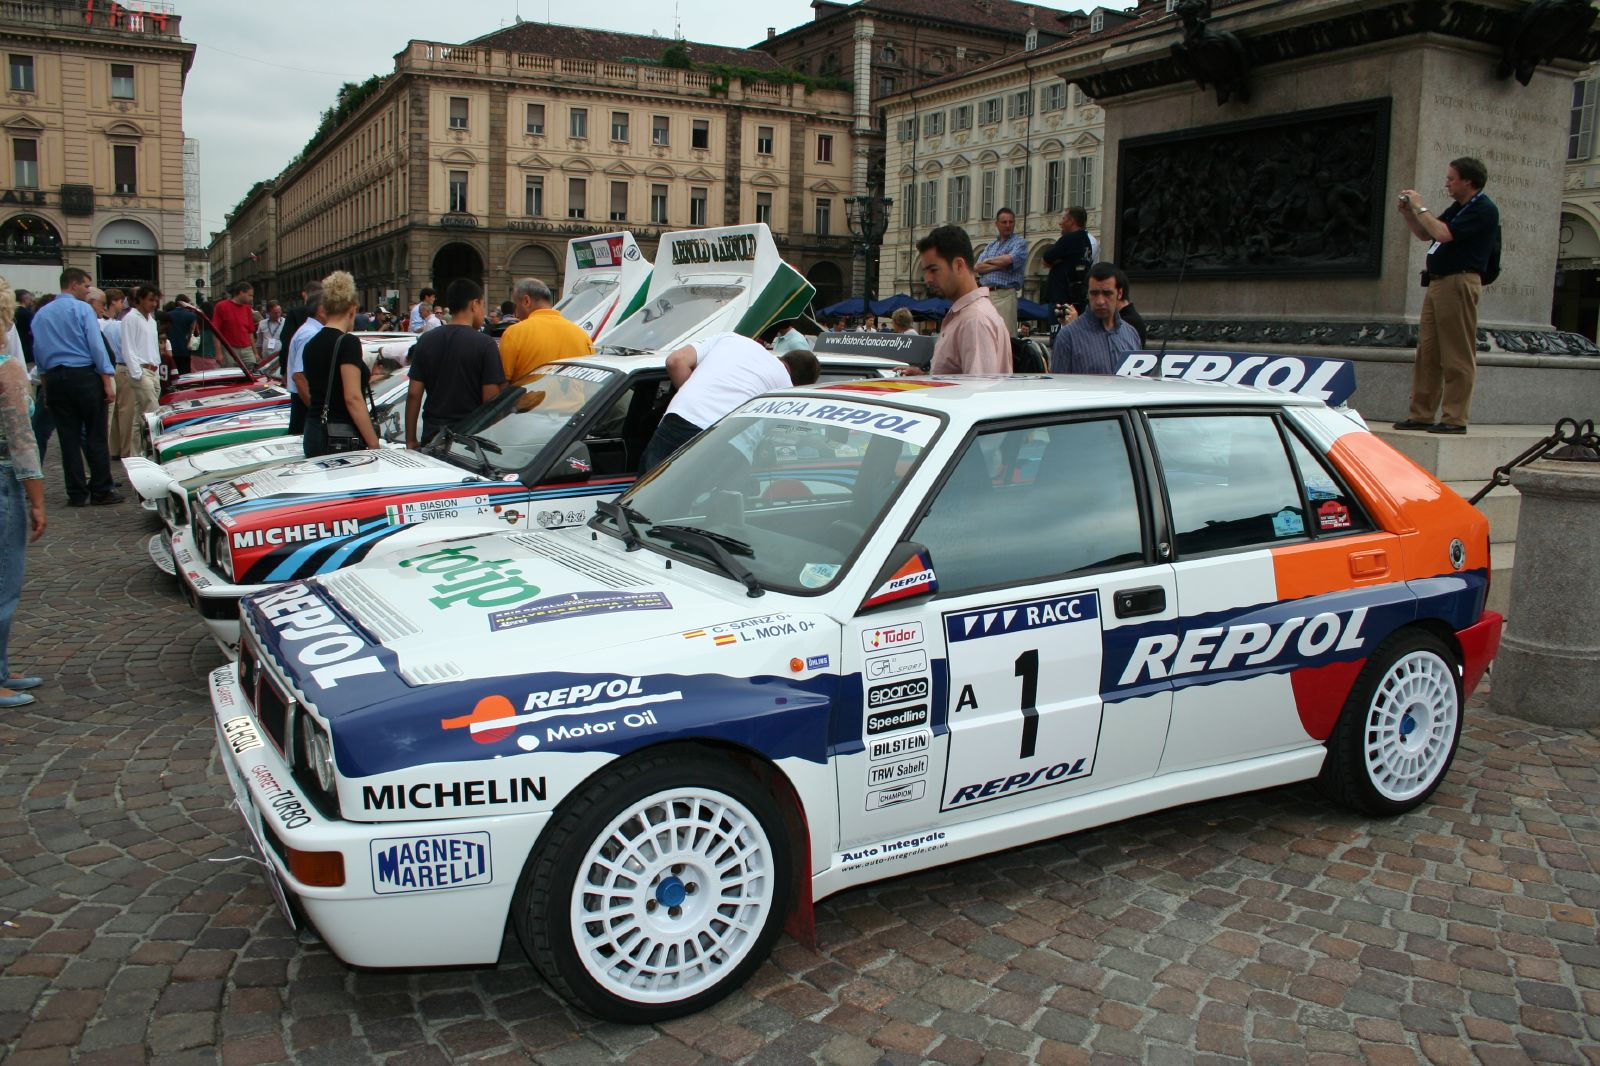 https://upload.wikimedia.org/wikipedia/commons/1/1c/Lancia_Delta_HF_Integrale_01.jpg